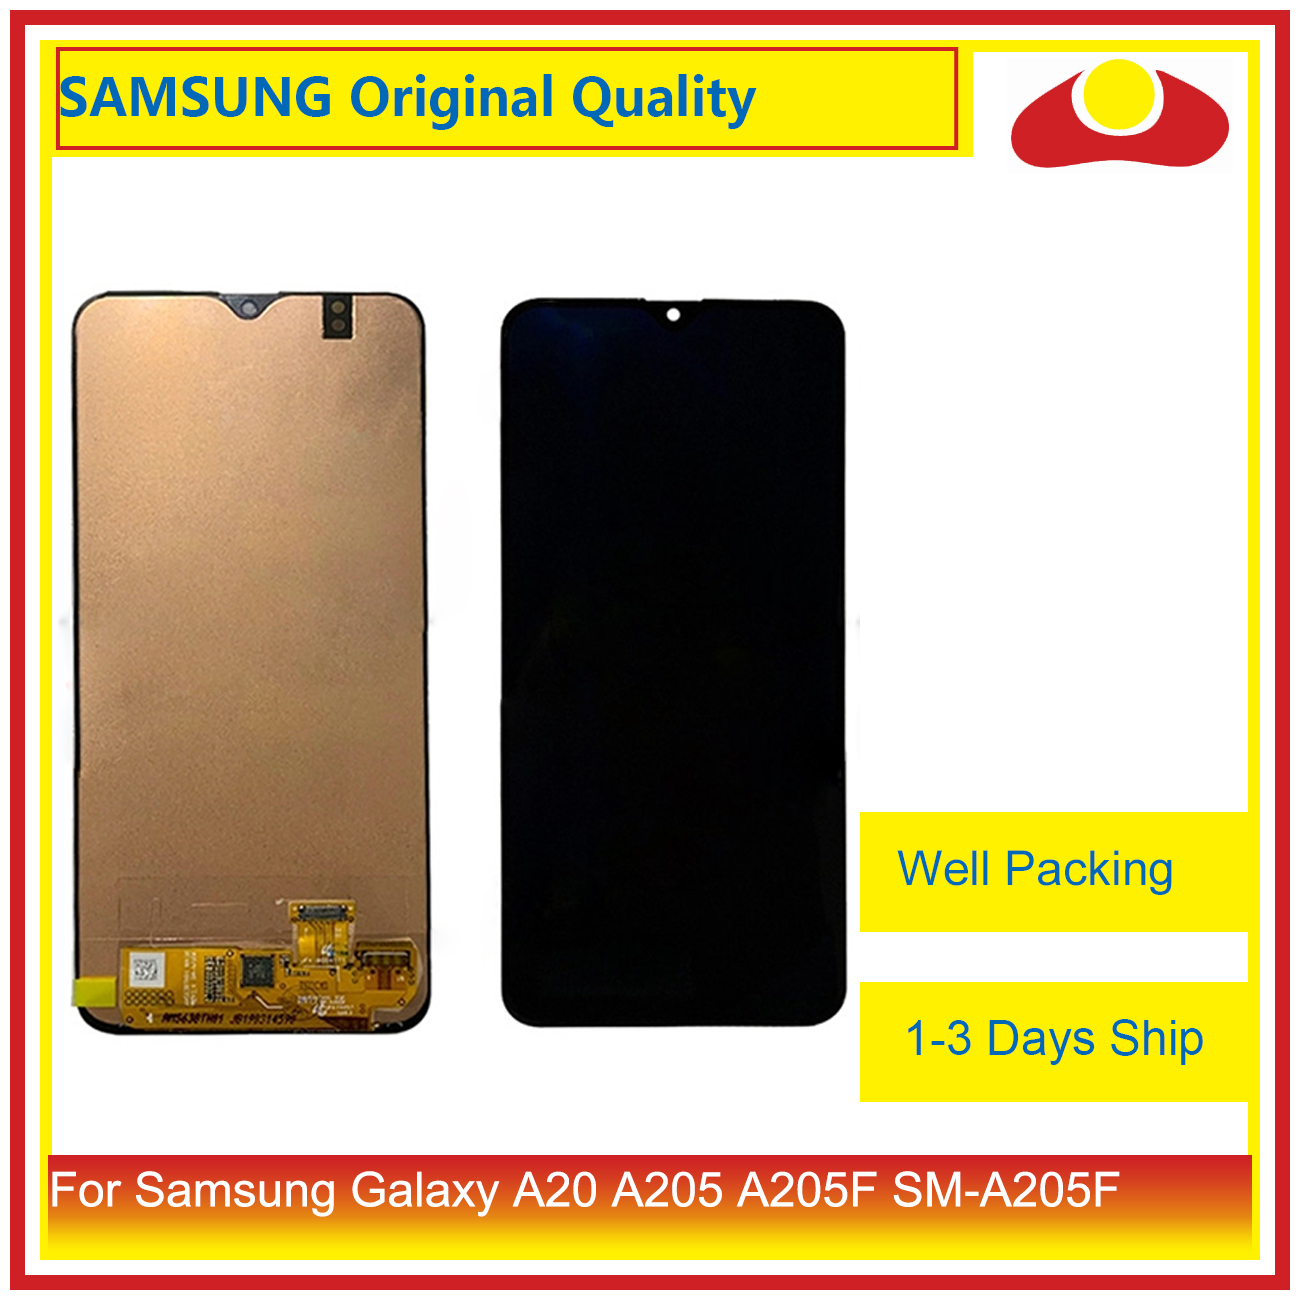 10Pcs/lot DHL For Samsung Galaxy A20 A205 <font><b>A205F</b></font> <font><b>SM</b></font>-<font><b>A205F</b></font> LCD Display With Touch Screen Digitizer Panel Pantalla Complete image